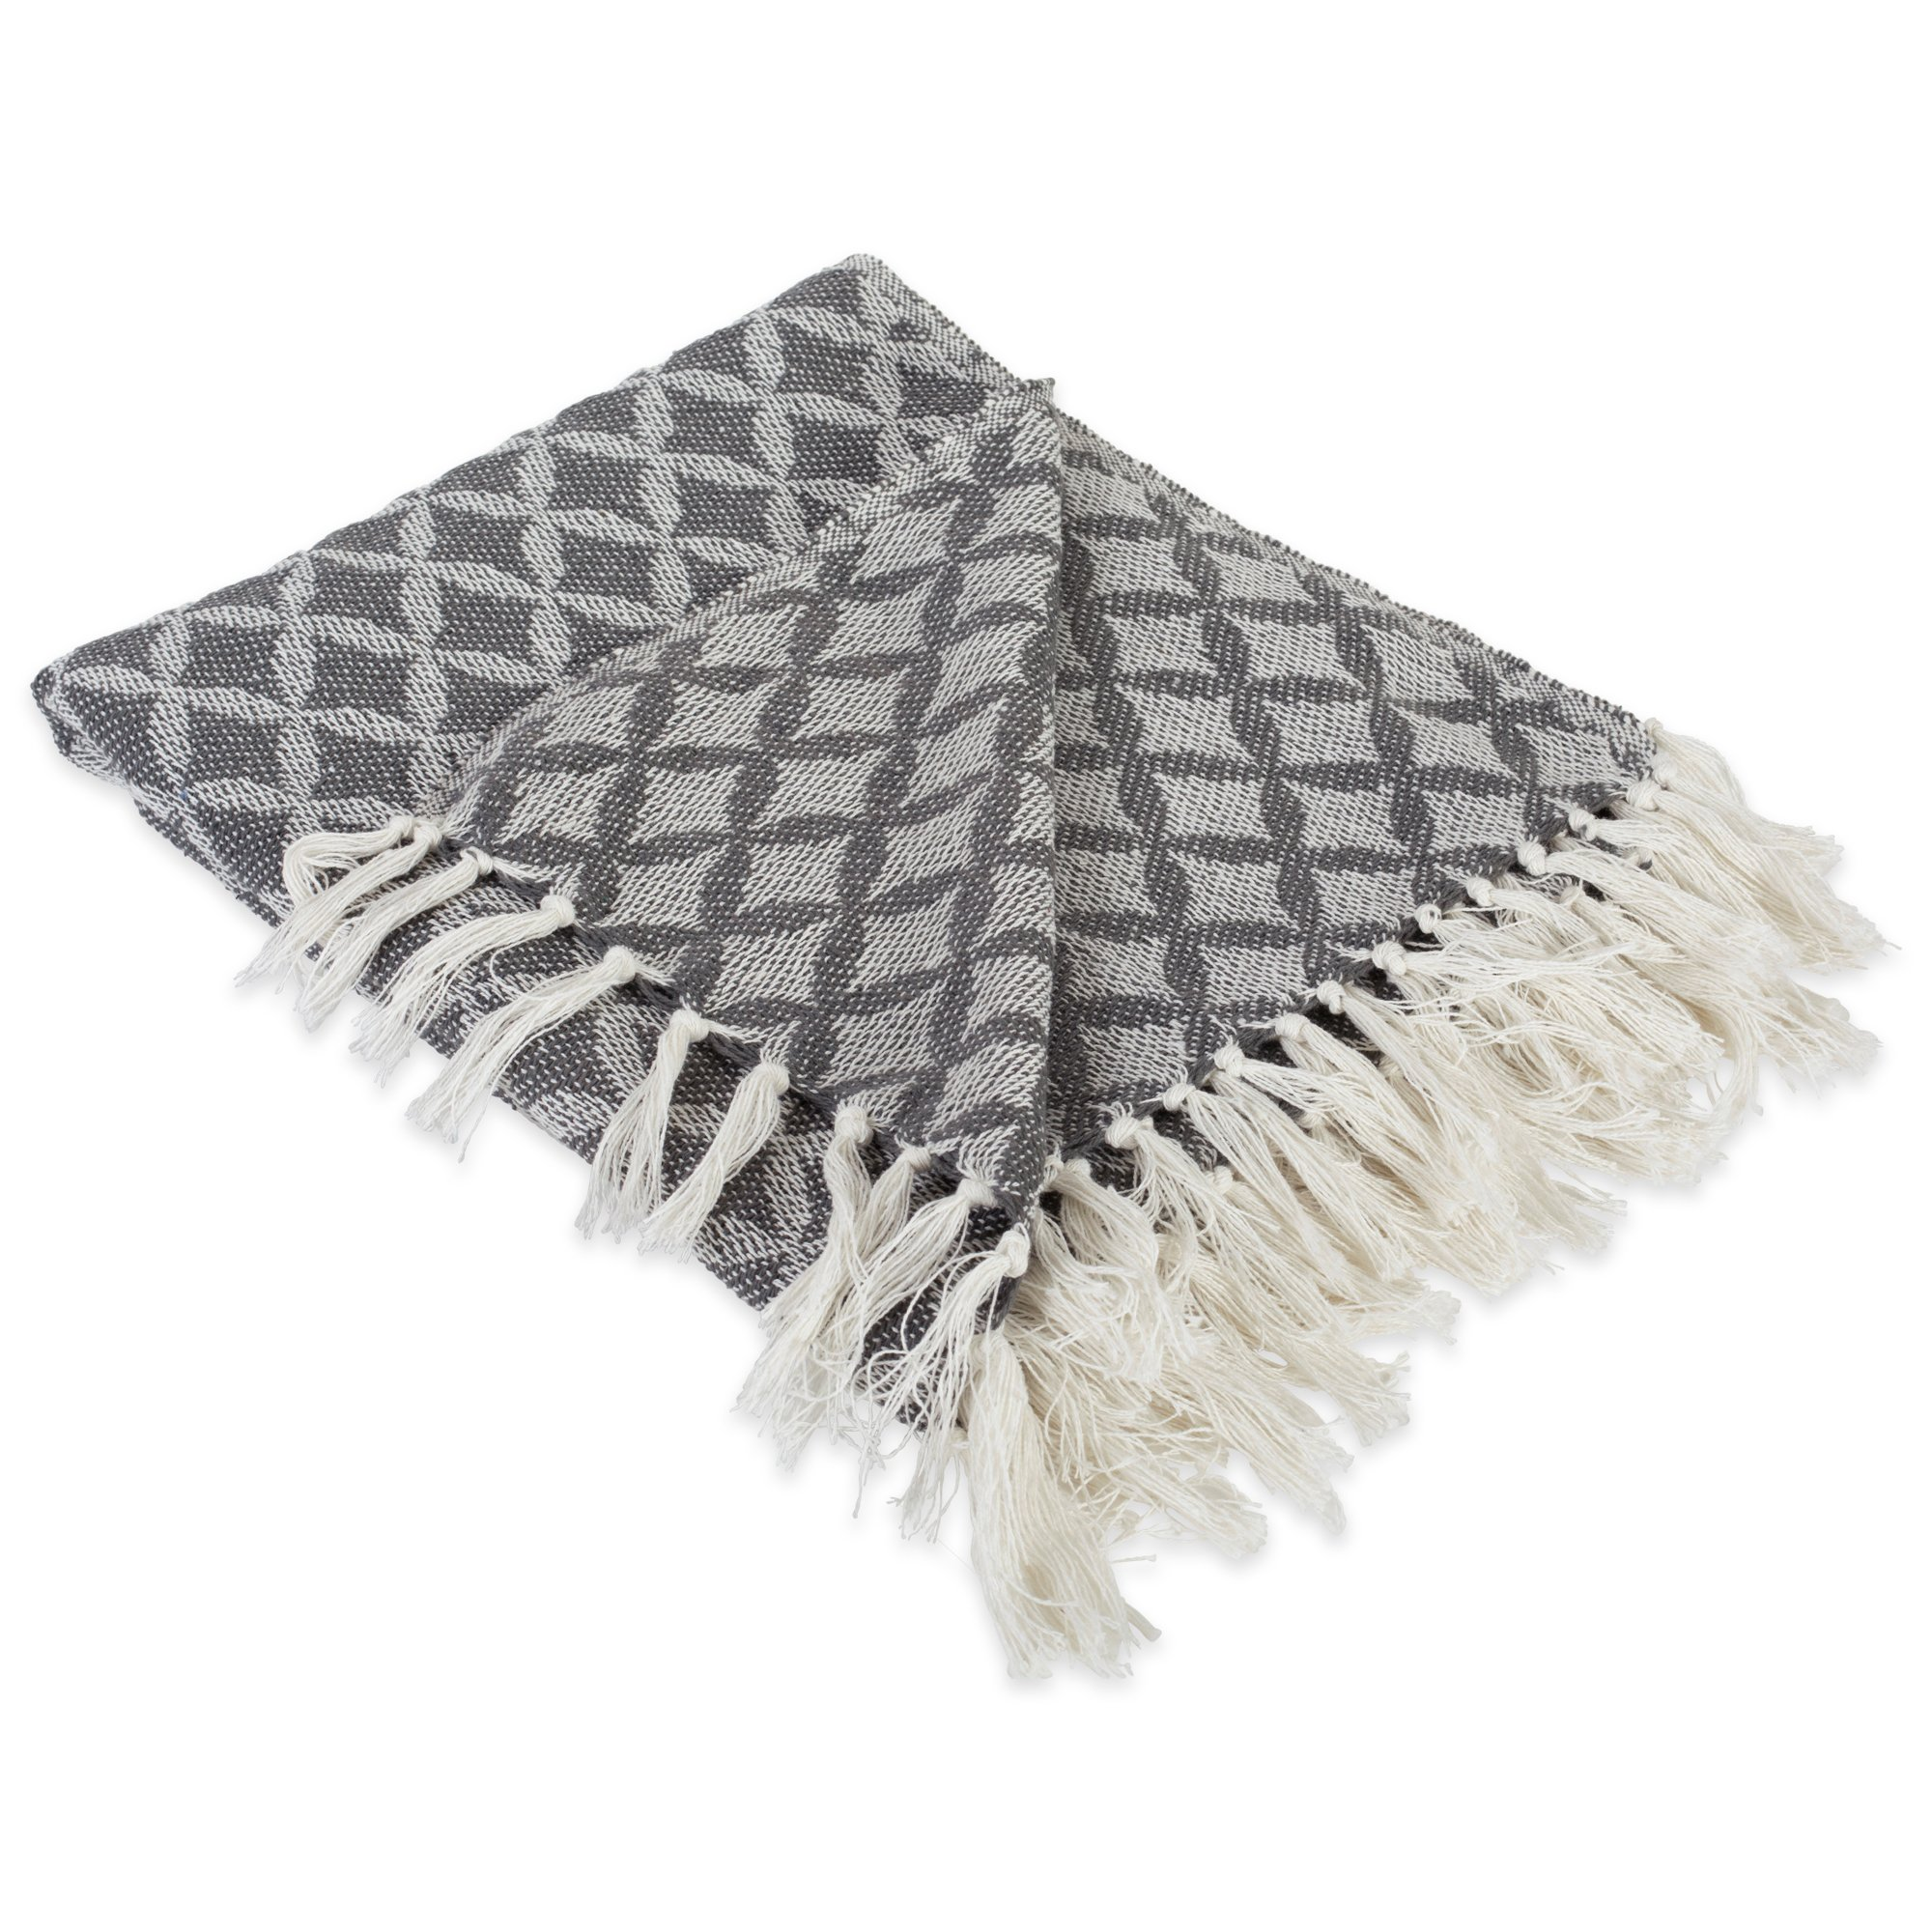 DII Modern Moroccan Cotton Blanket Throw with Fringe For Chair, Couch, Picnic, Camping, Beach, & Everyday Use , 50 x 60'' - Garden Lattice Mineral Gray